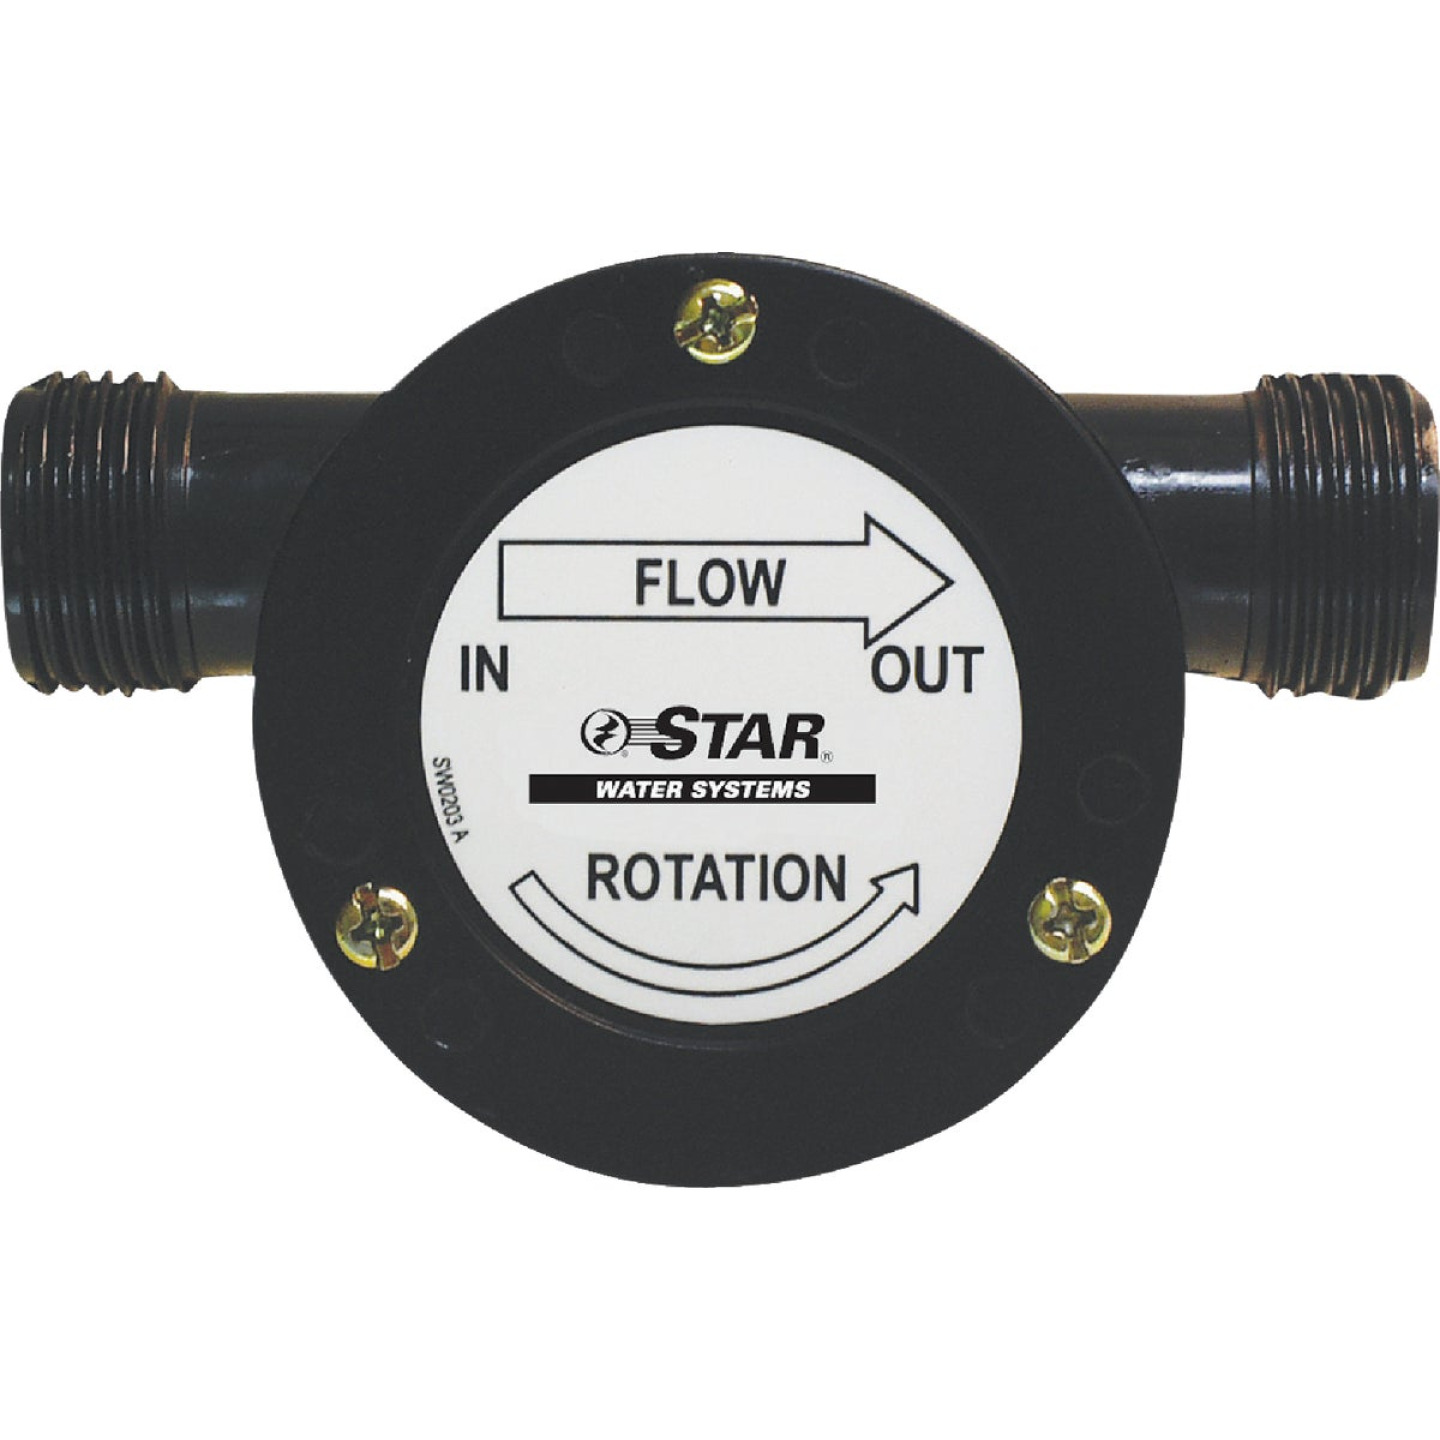 Star Water Systems Drill Pump Image 1